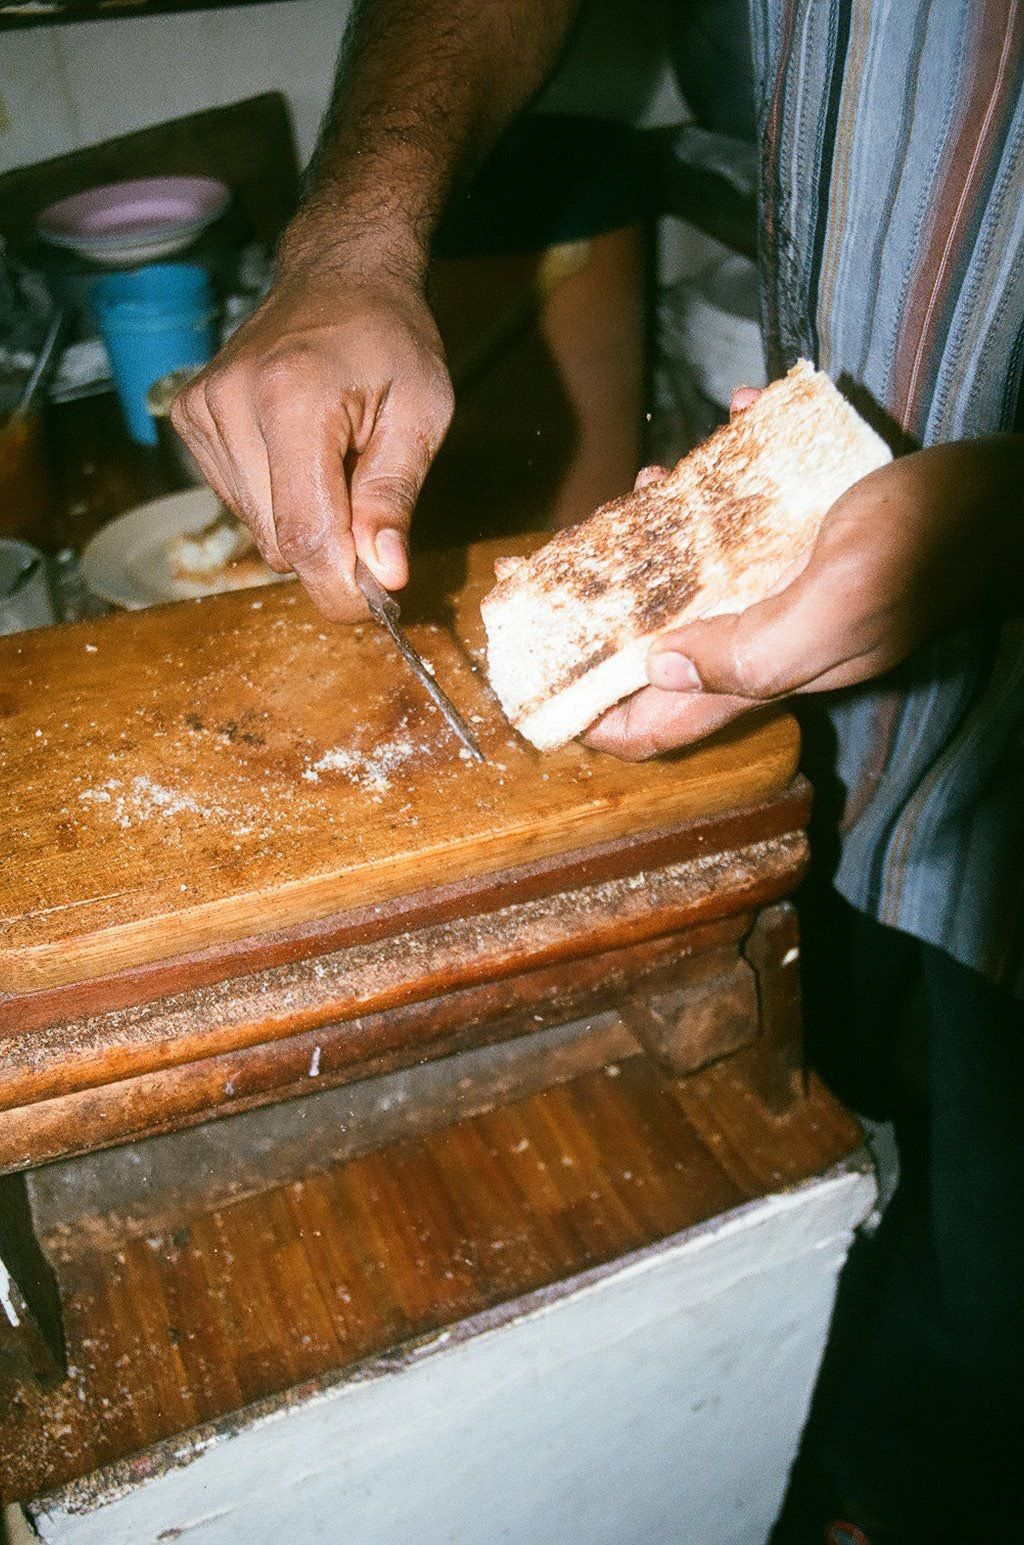 Scraping the grilled bread for kaya toast